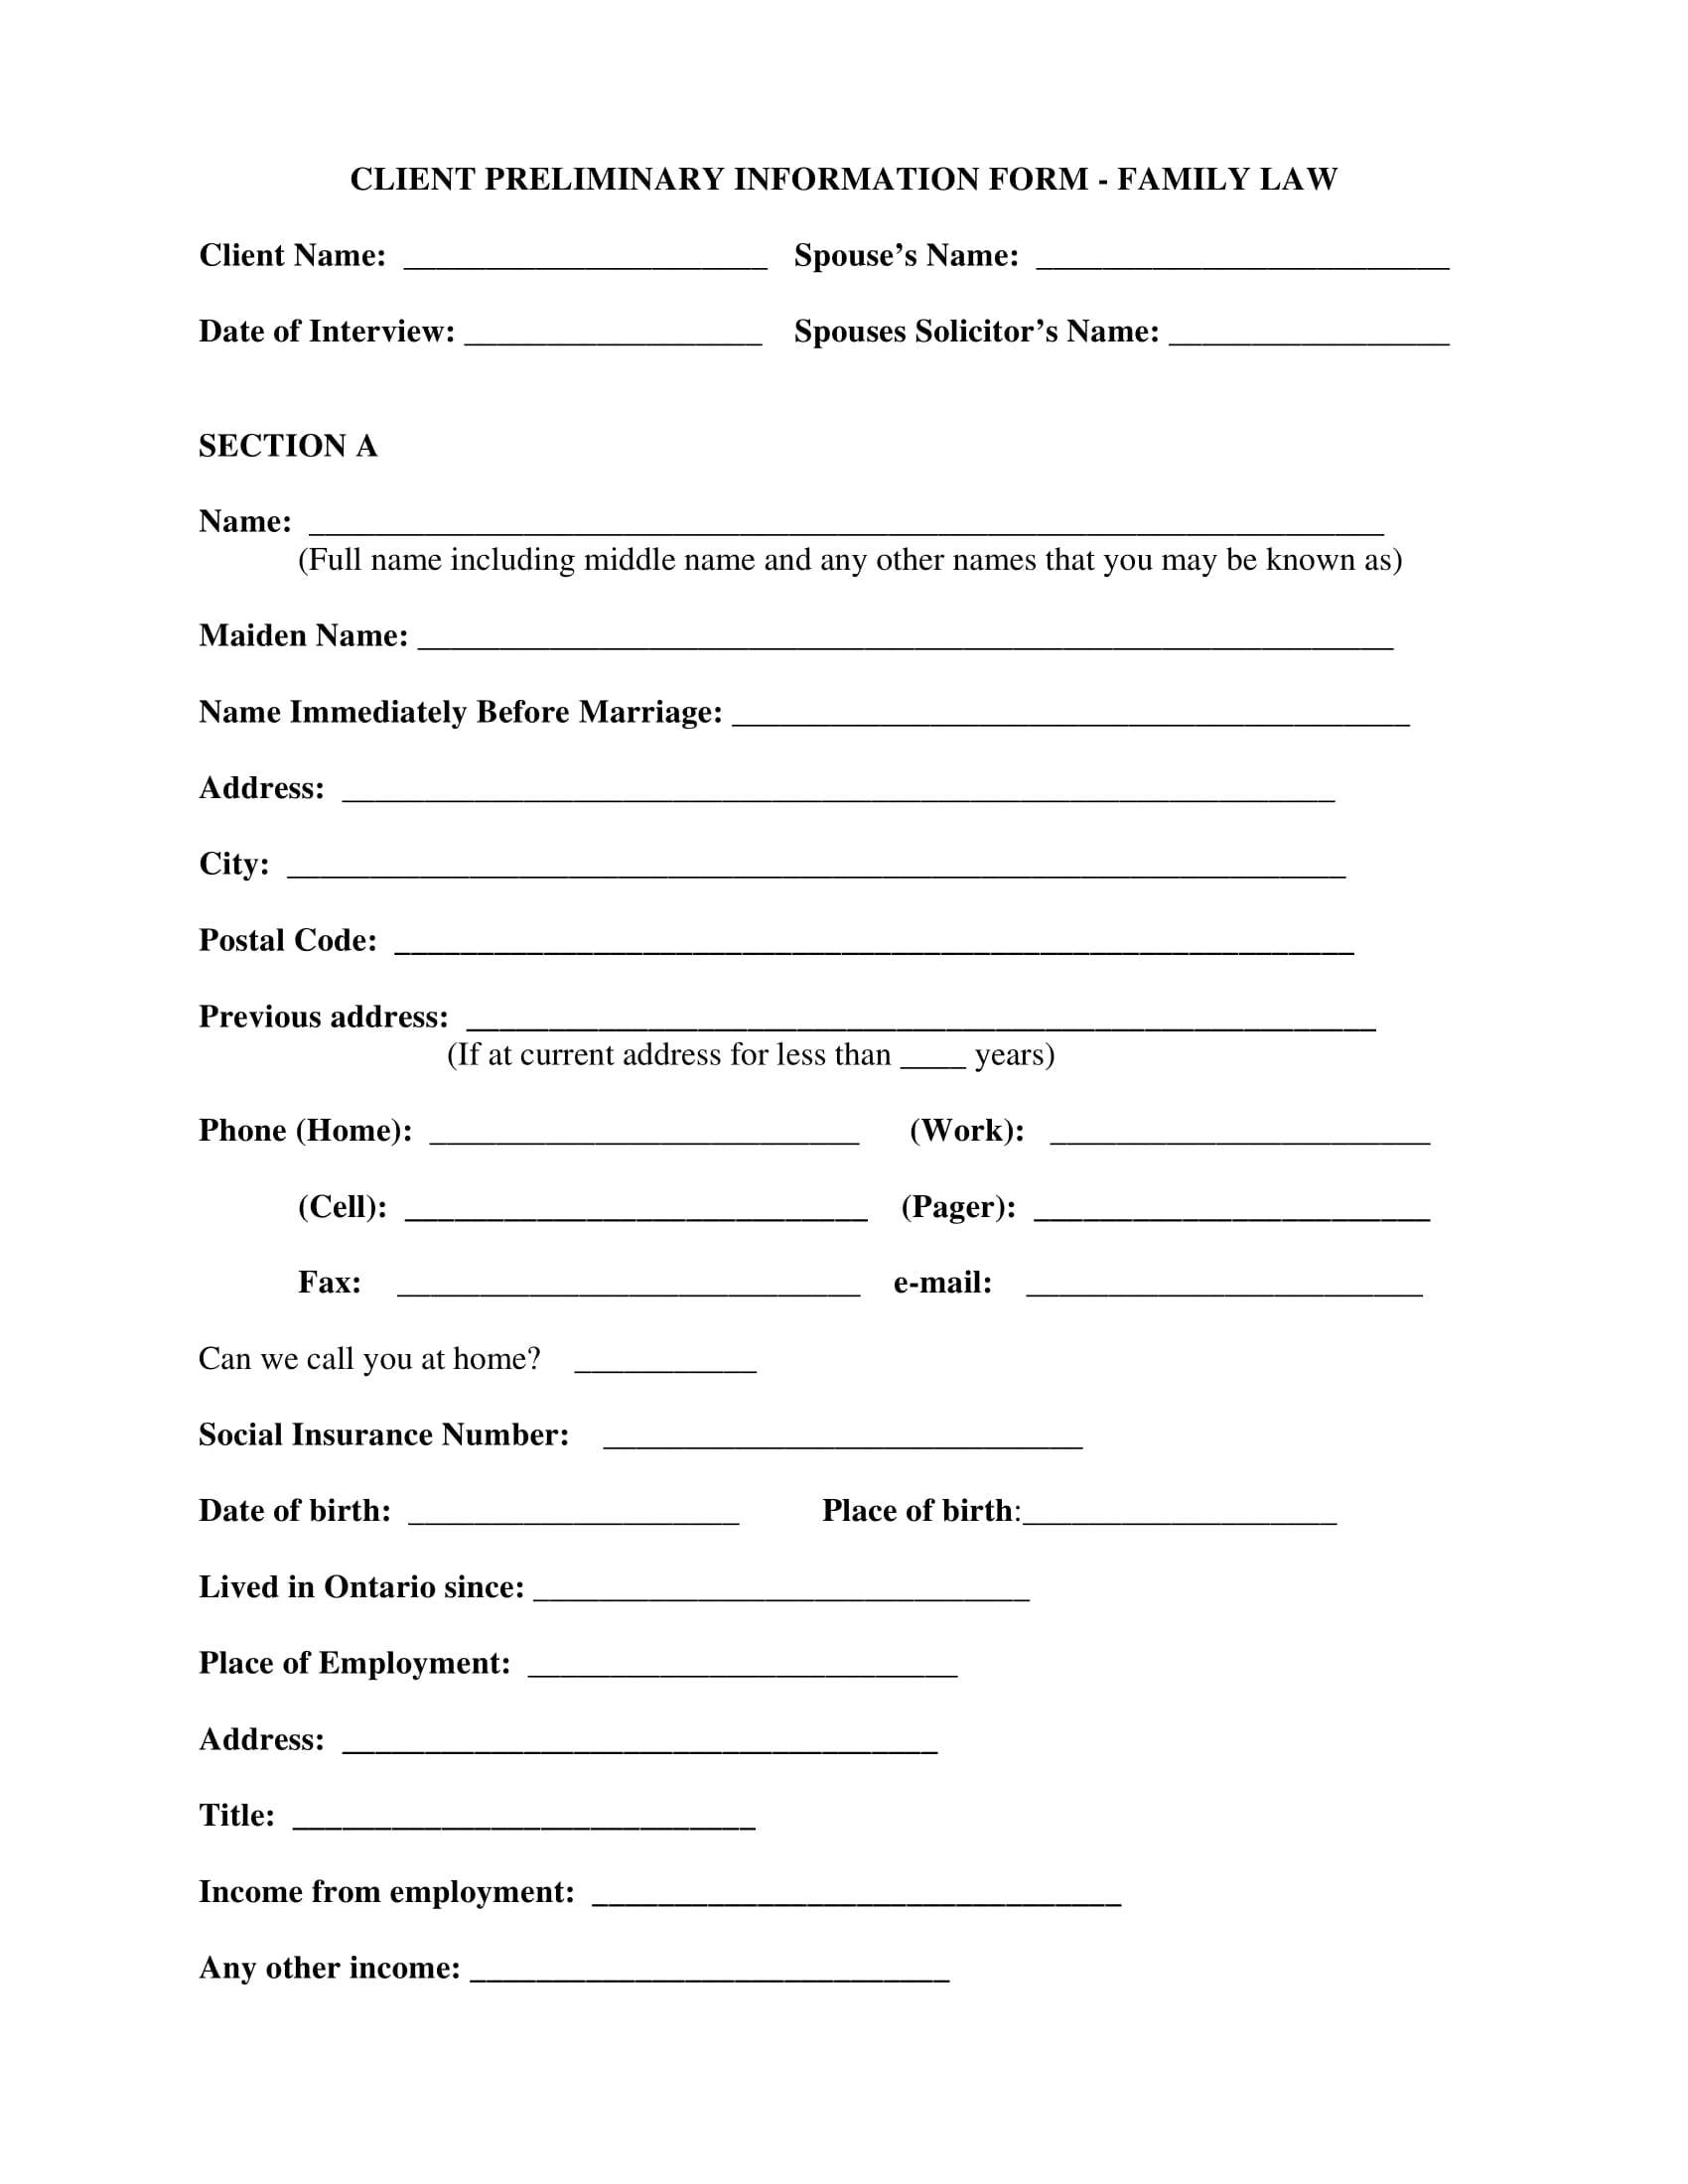 family law client preliminary intake form 1